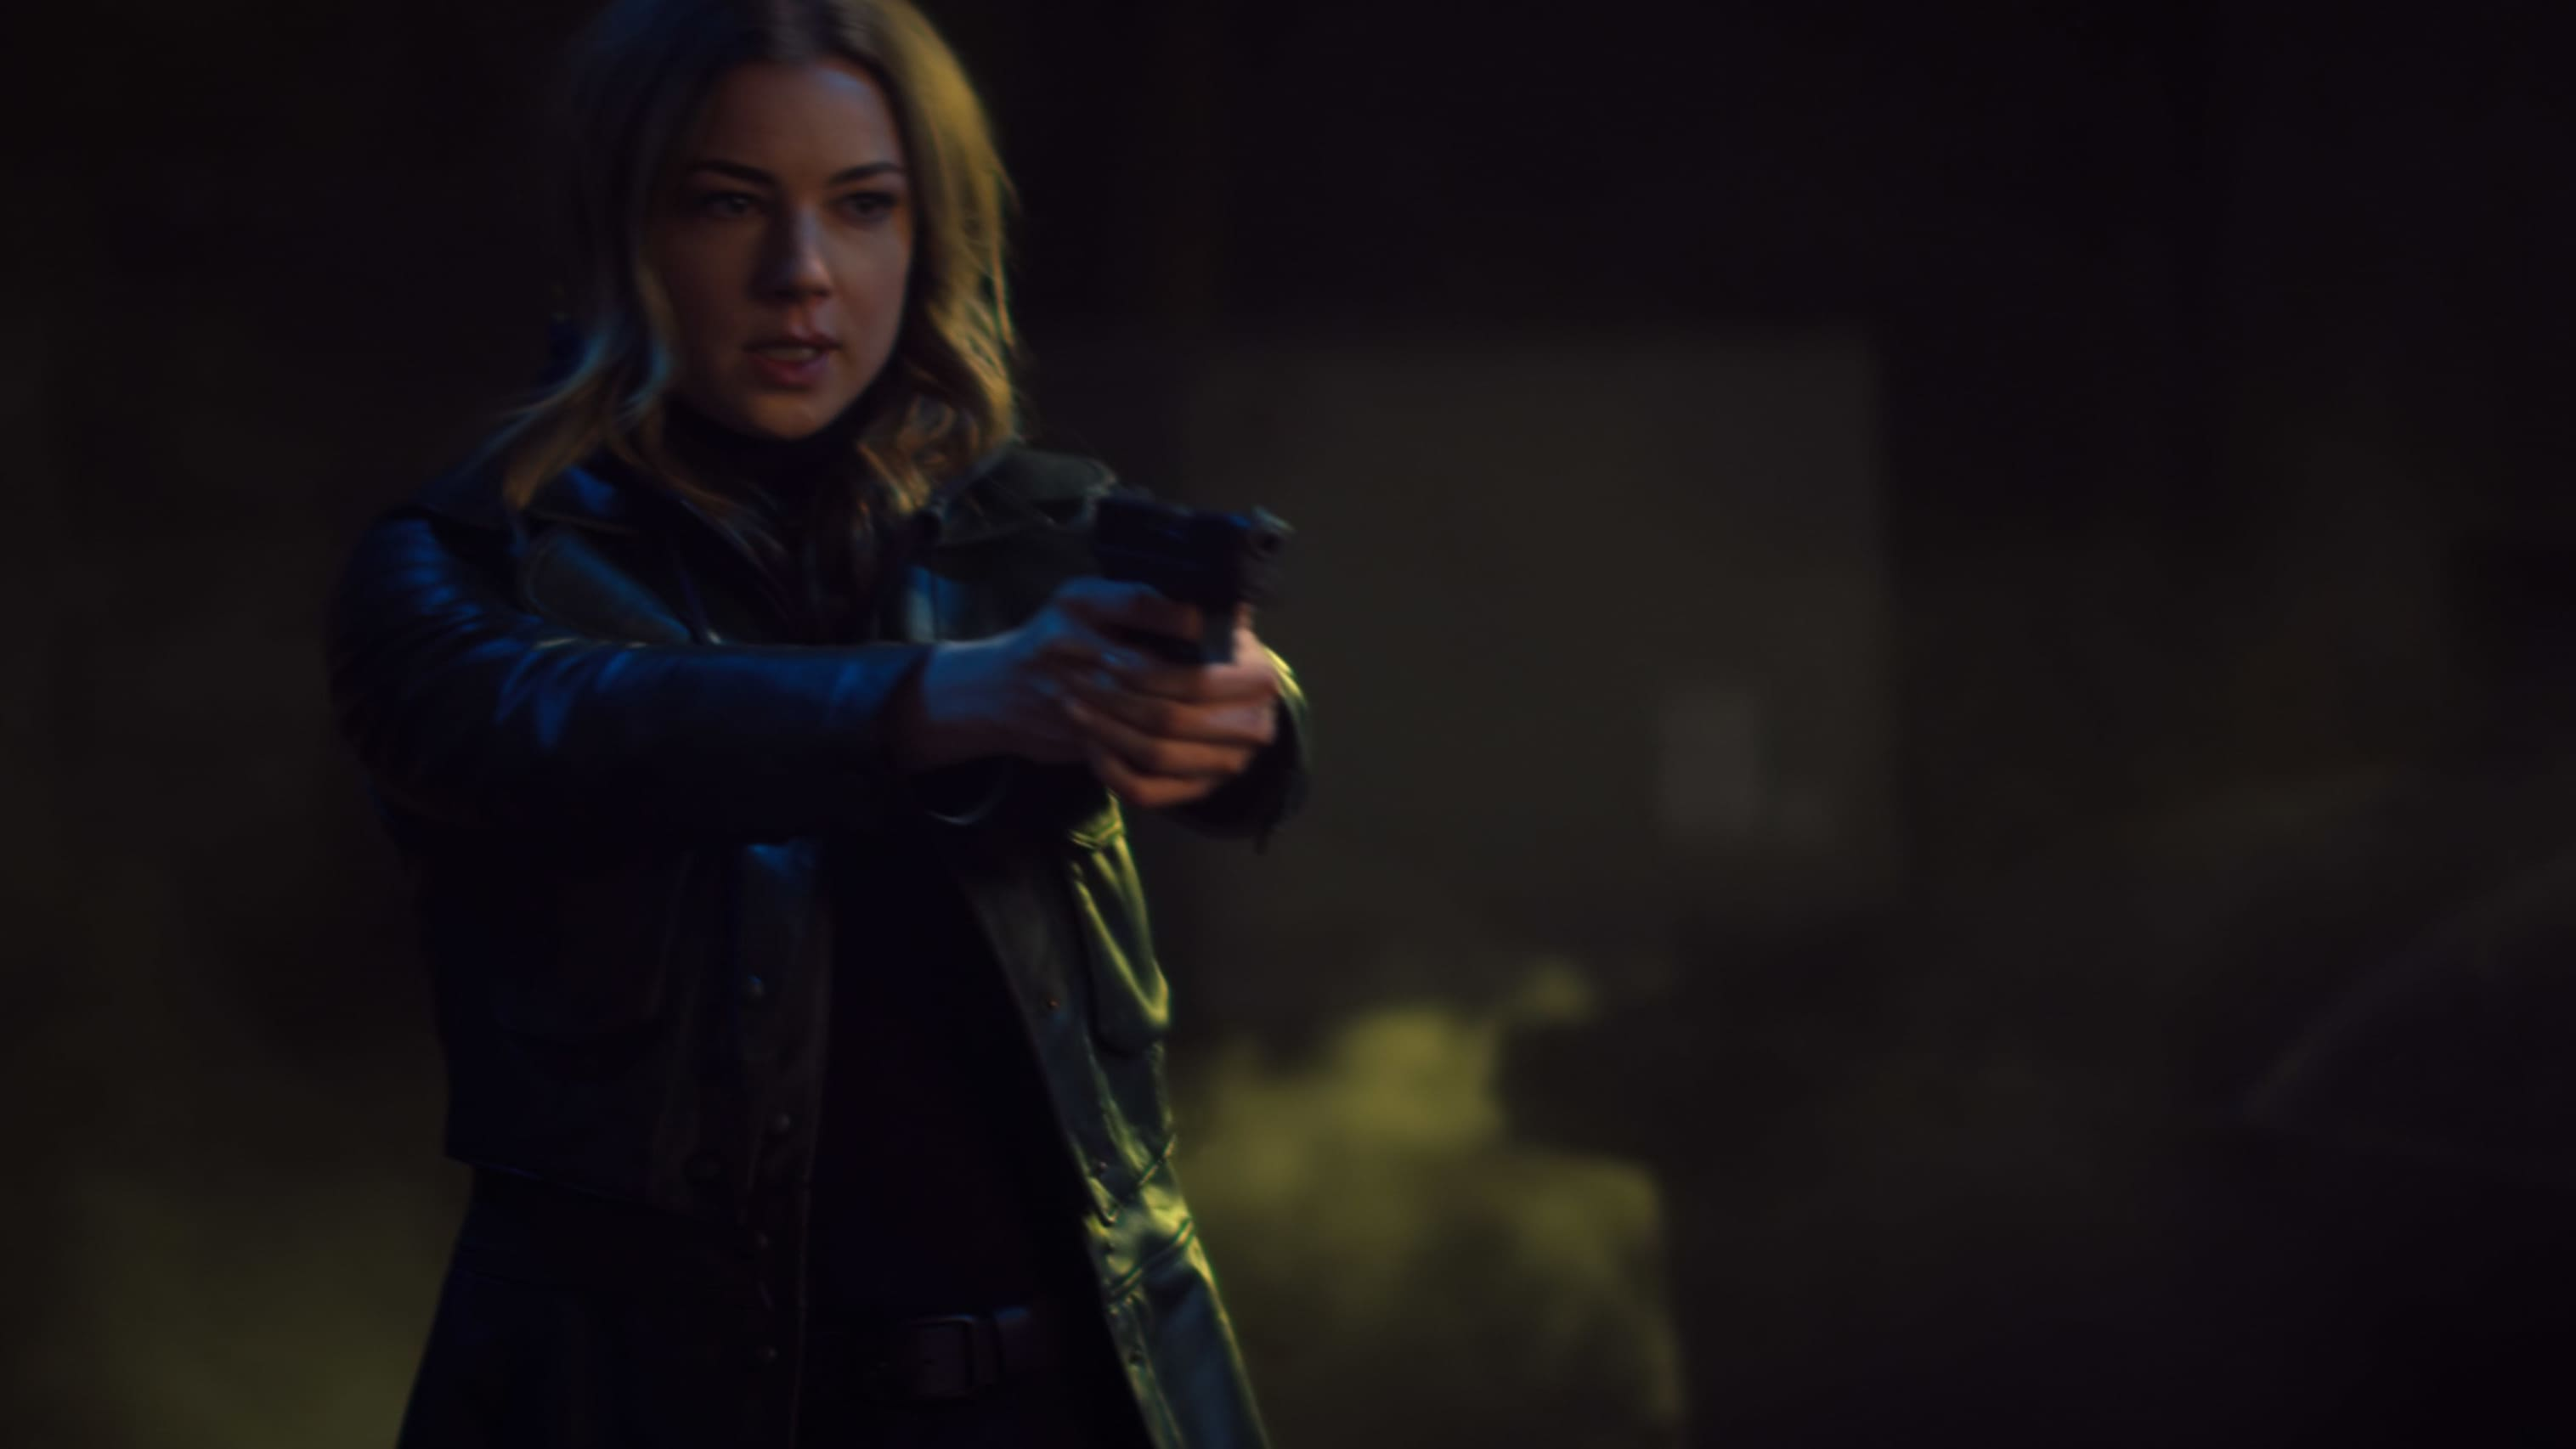 Sharon Carter/Agent 13 (Emily VanCamp) in Marvel Studios' THE FALCON AND THE WINTER SOLDIER exclusively on Disney+. Photo courtesy of Marvel Studios. ©Marvel Studios 2021. All Rights Reserved.